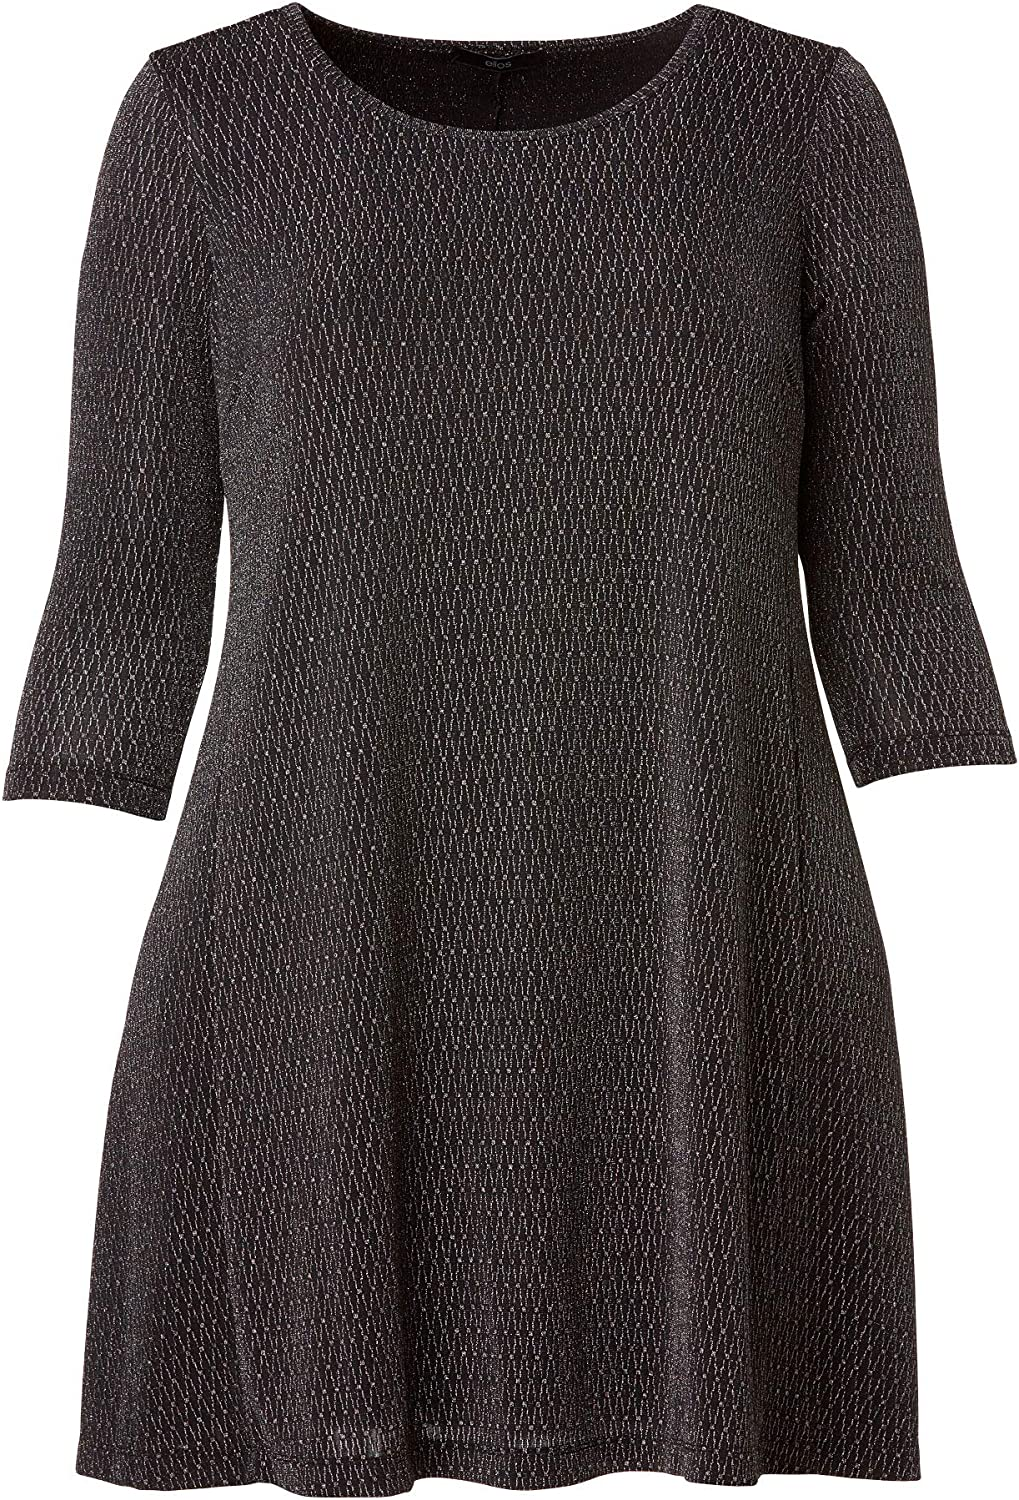 ellos Women's List price Inventory cleanup selling sale Plus Size Knit Glitter Dress